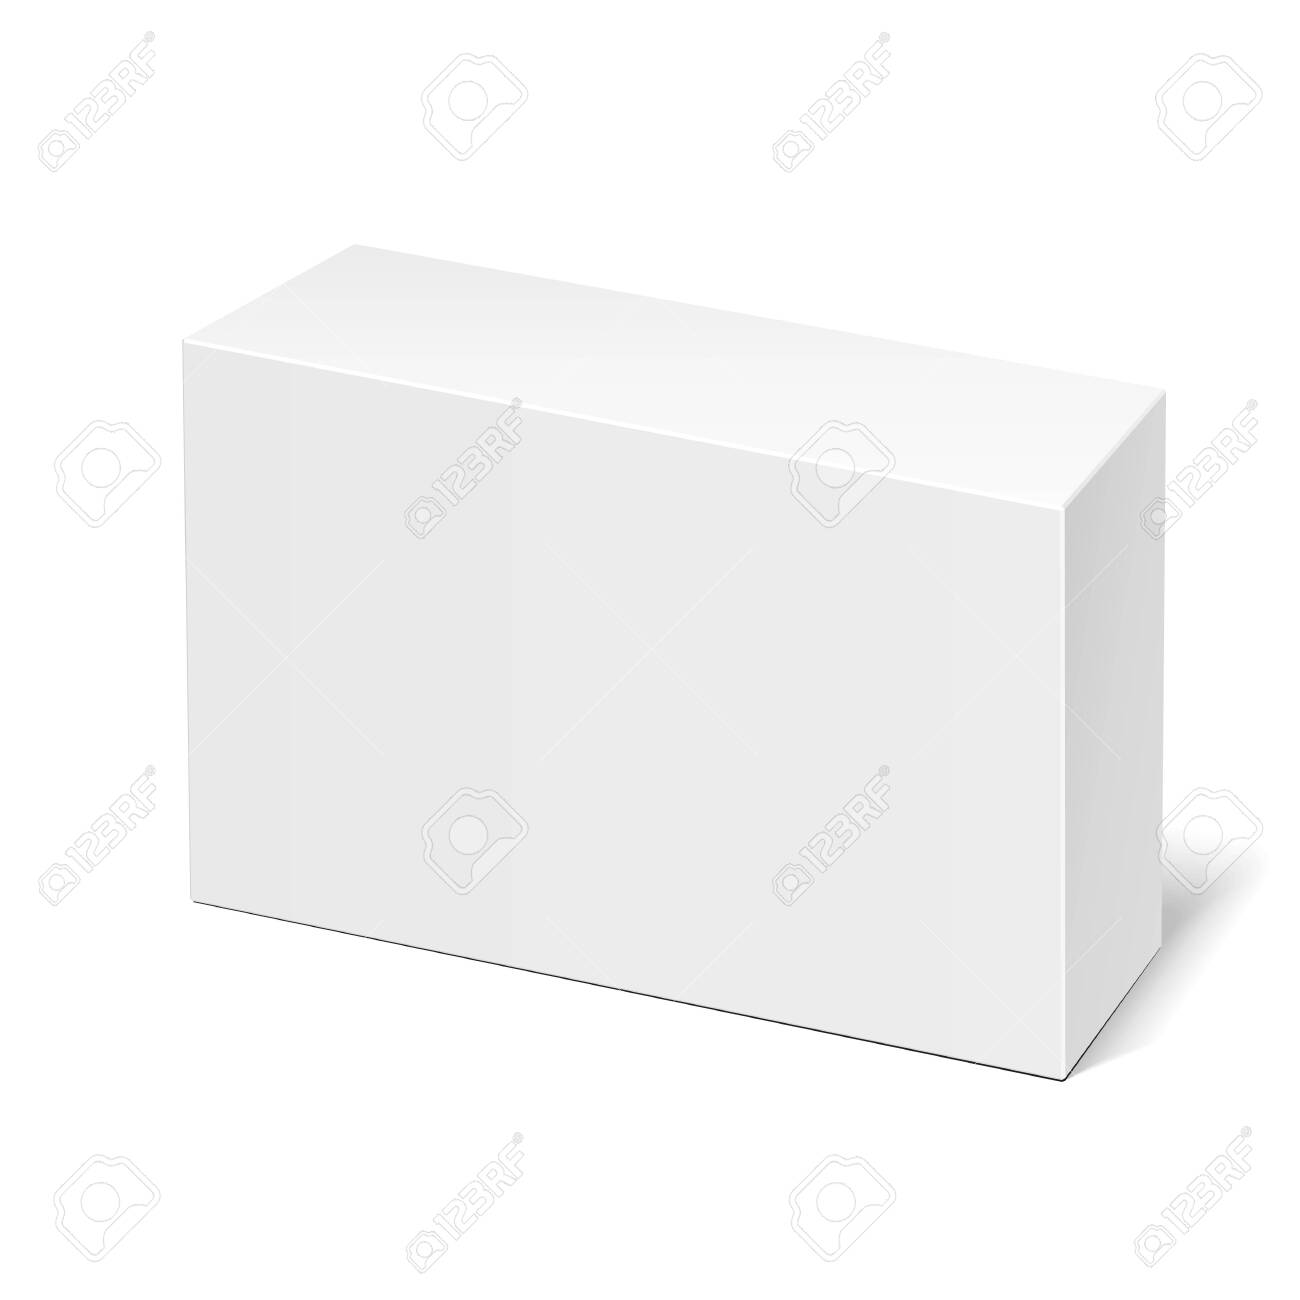 Mockup Product Cardboard Plastic Package Box. Illustration Isolated On White Background. Mock Up Template Ready For Your Design. Vector EPS10 - 123206669